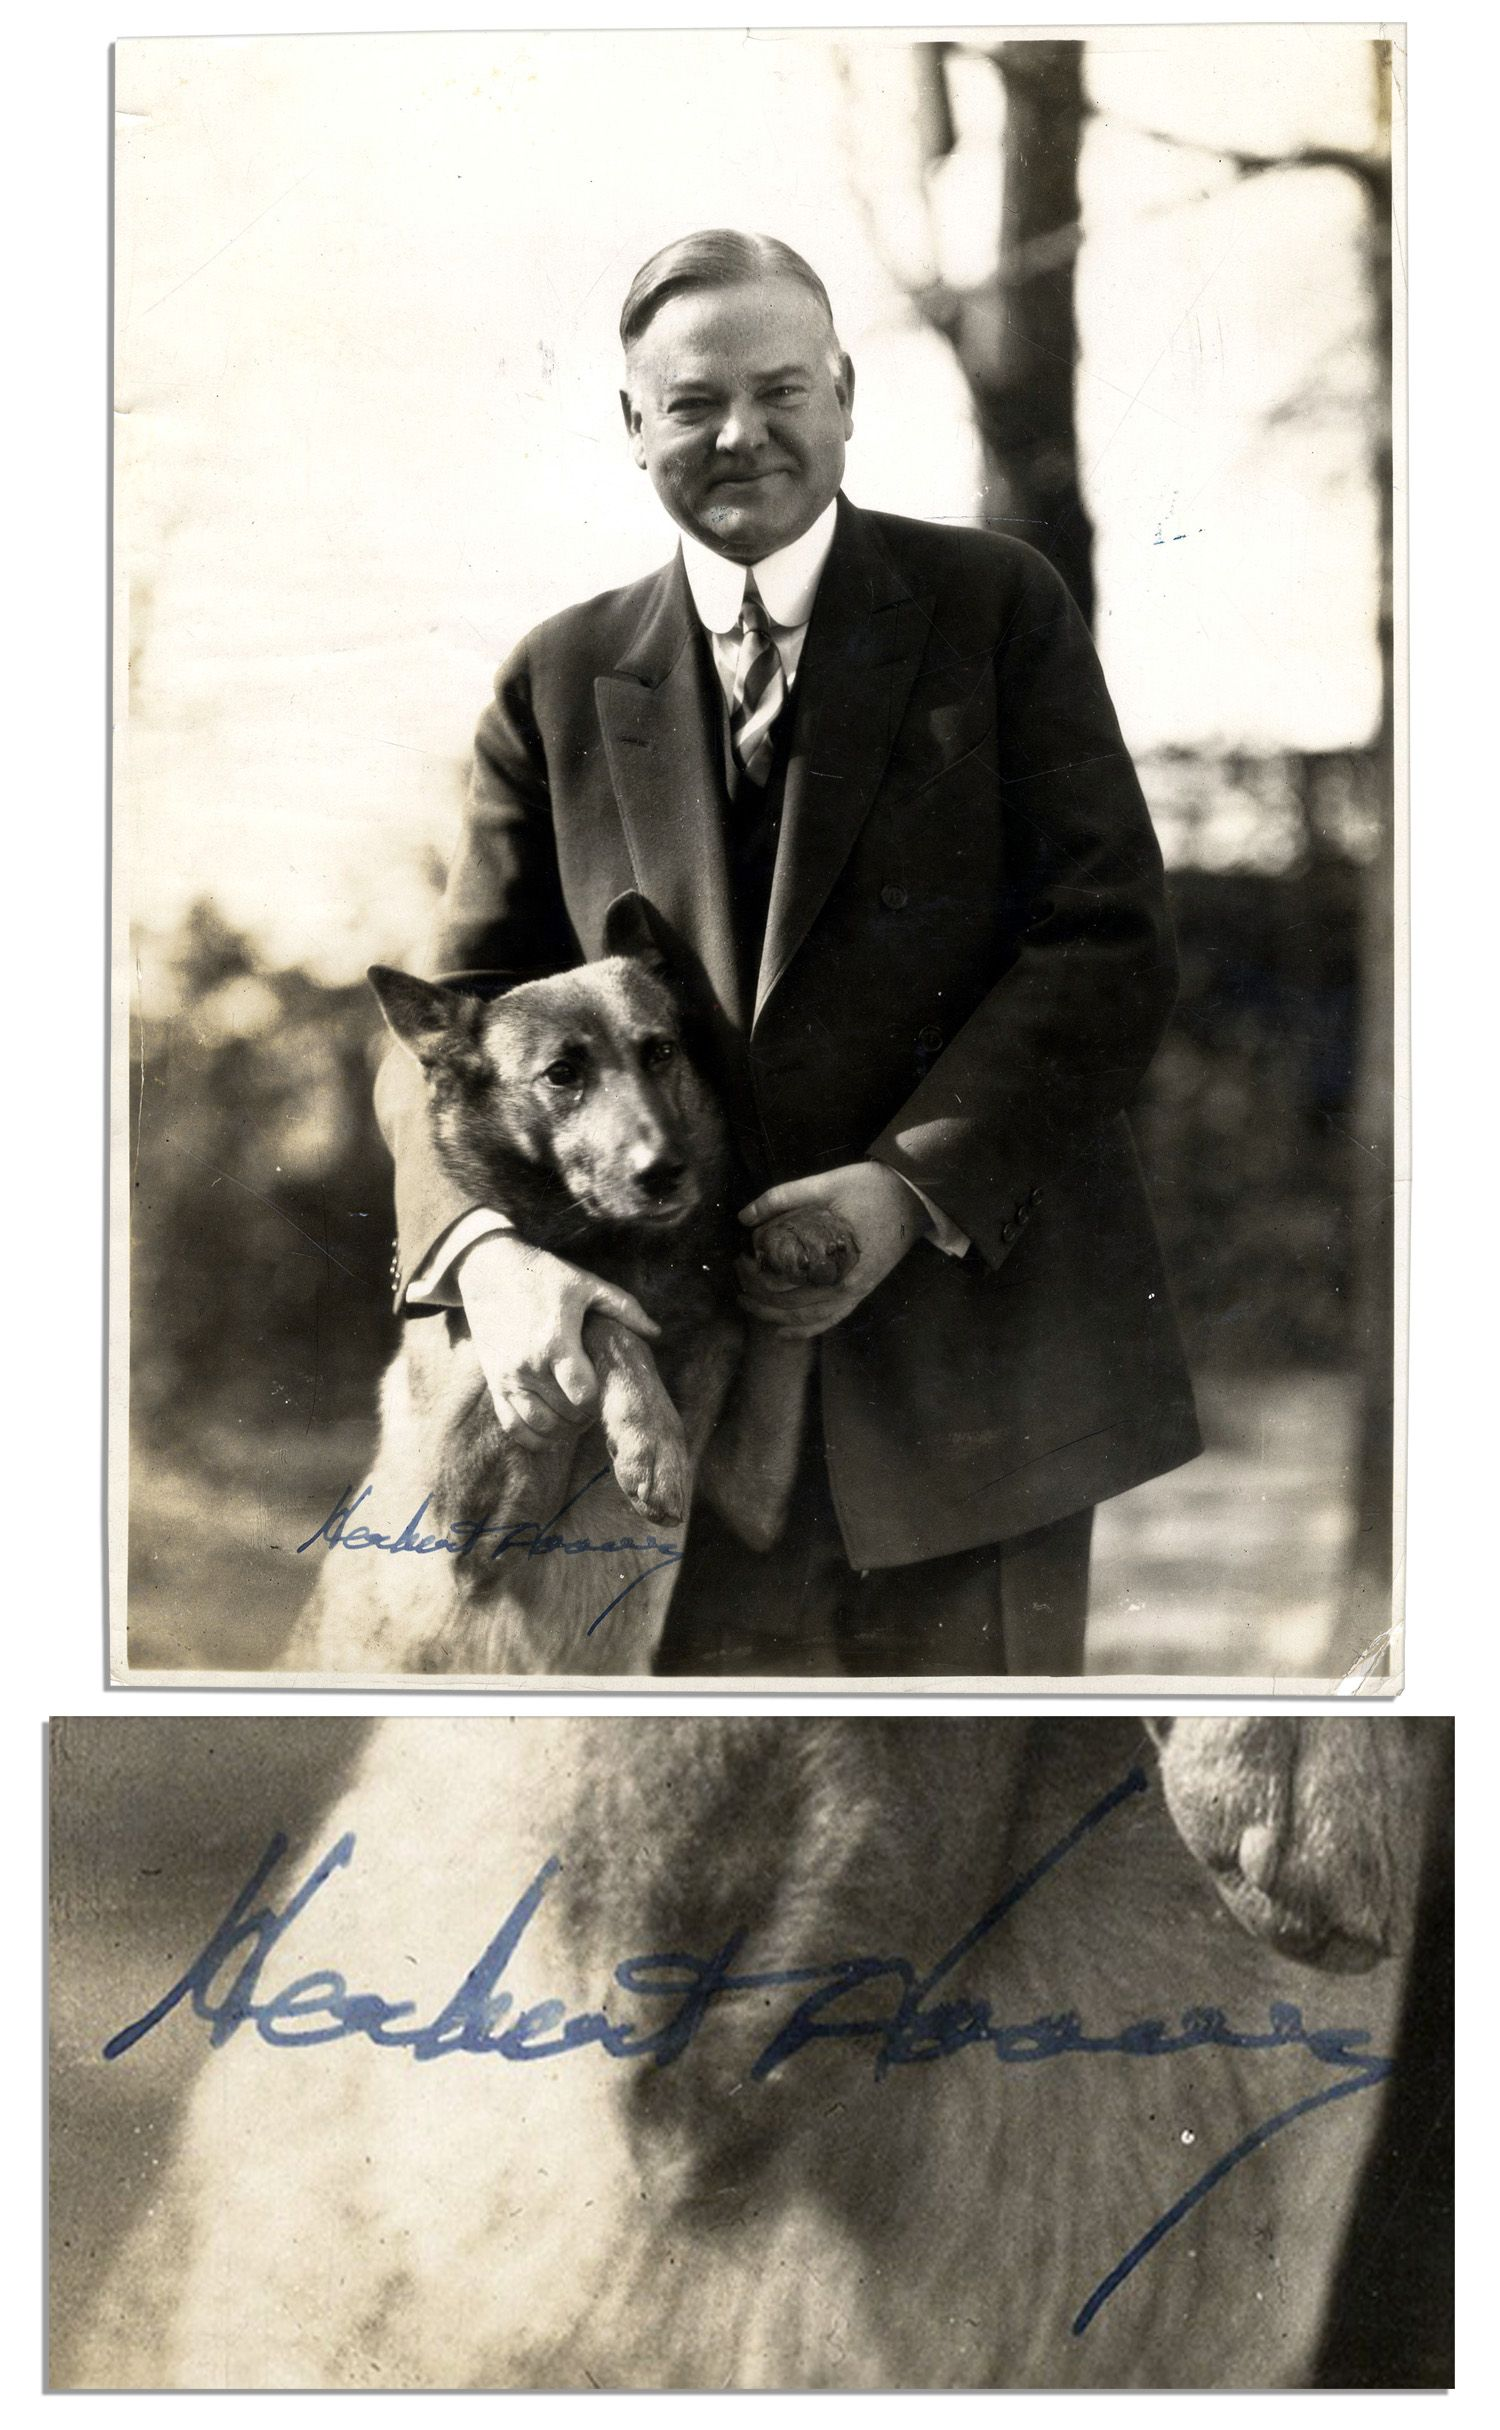 herbert hoover and his dog - Google Search